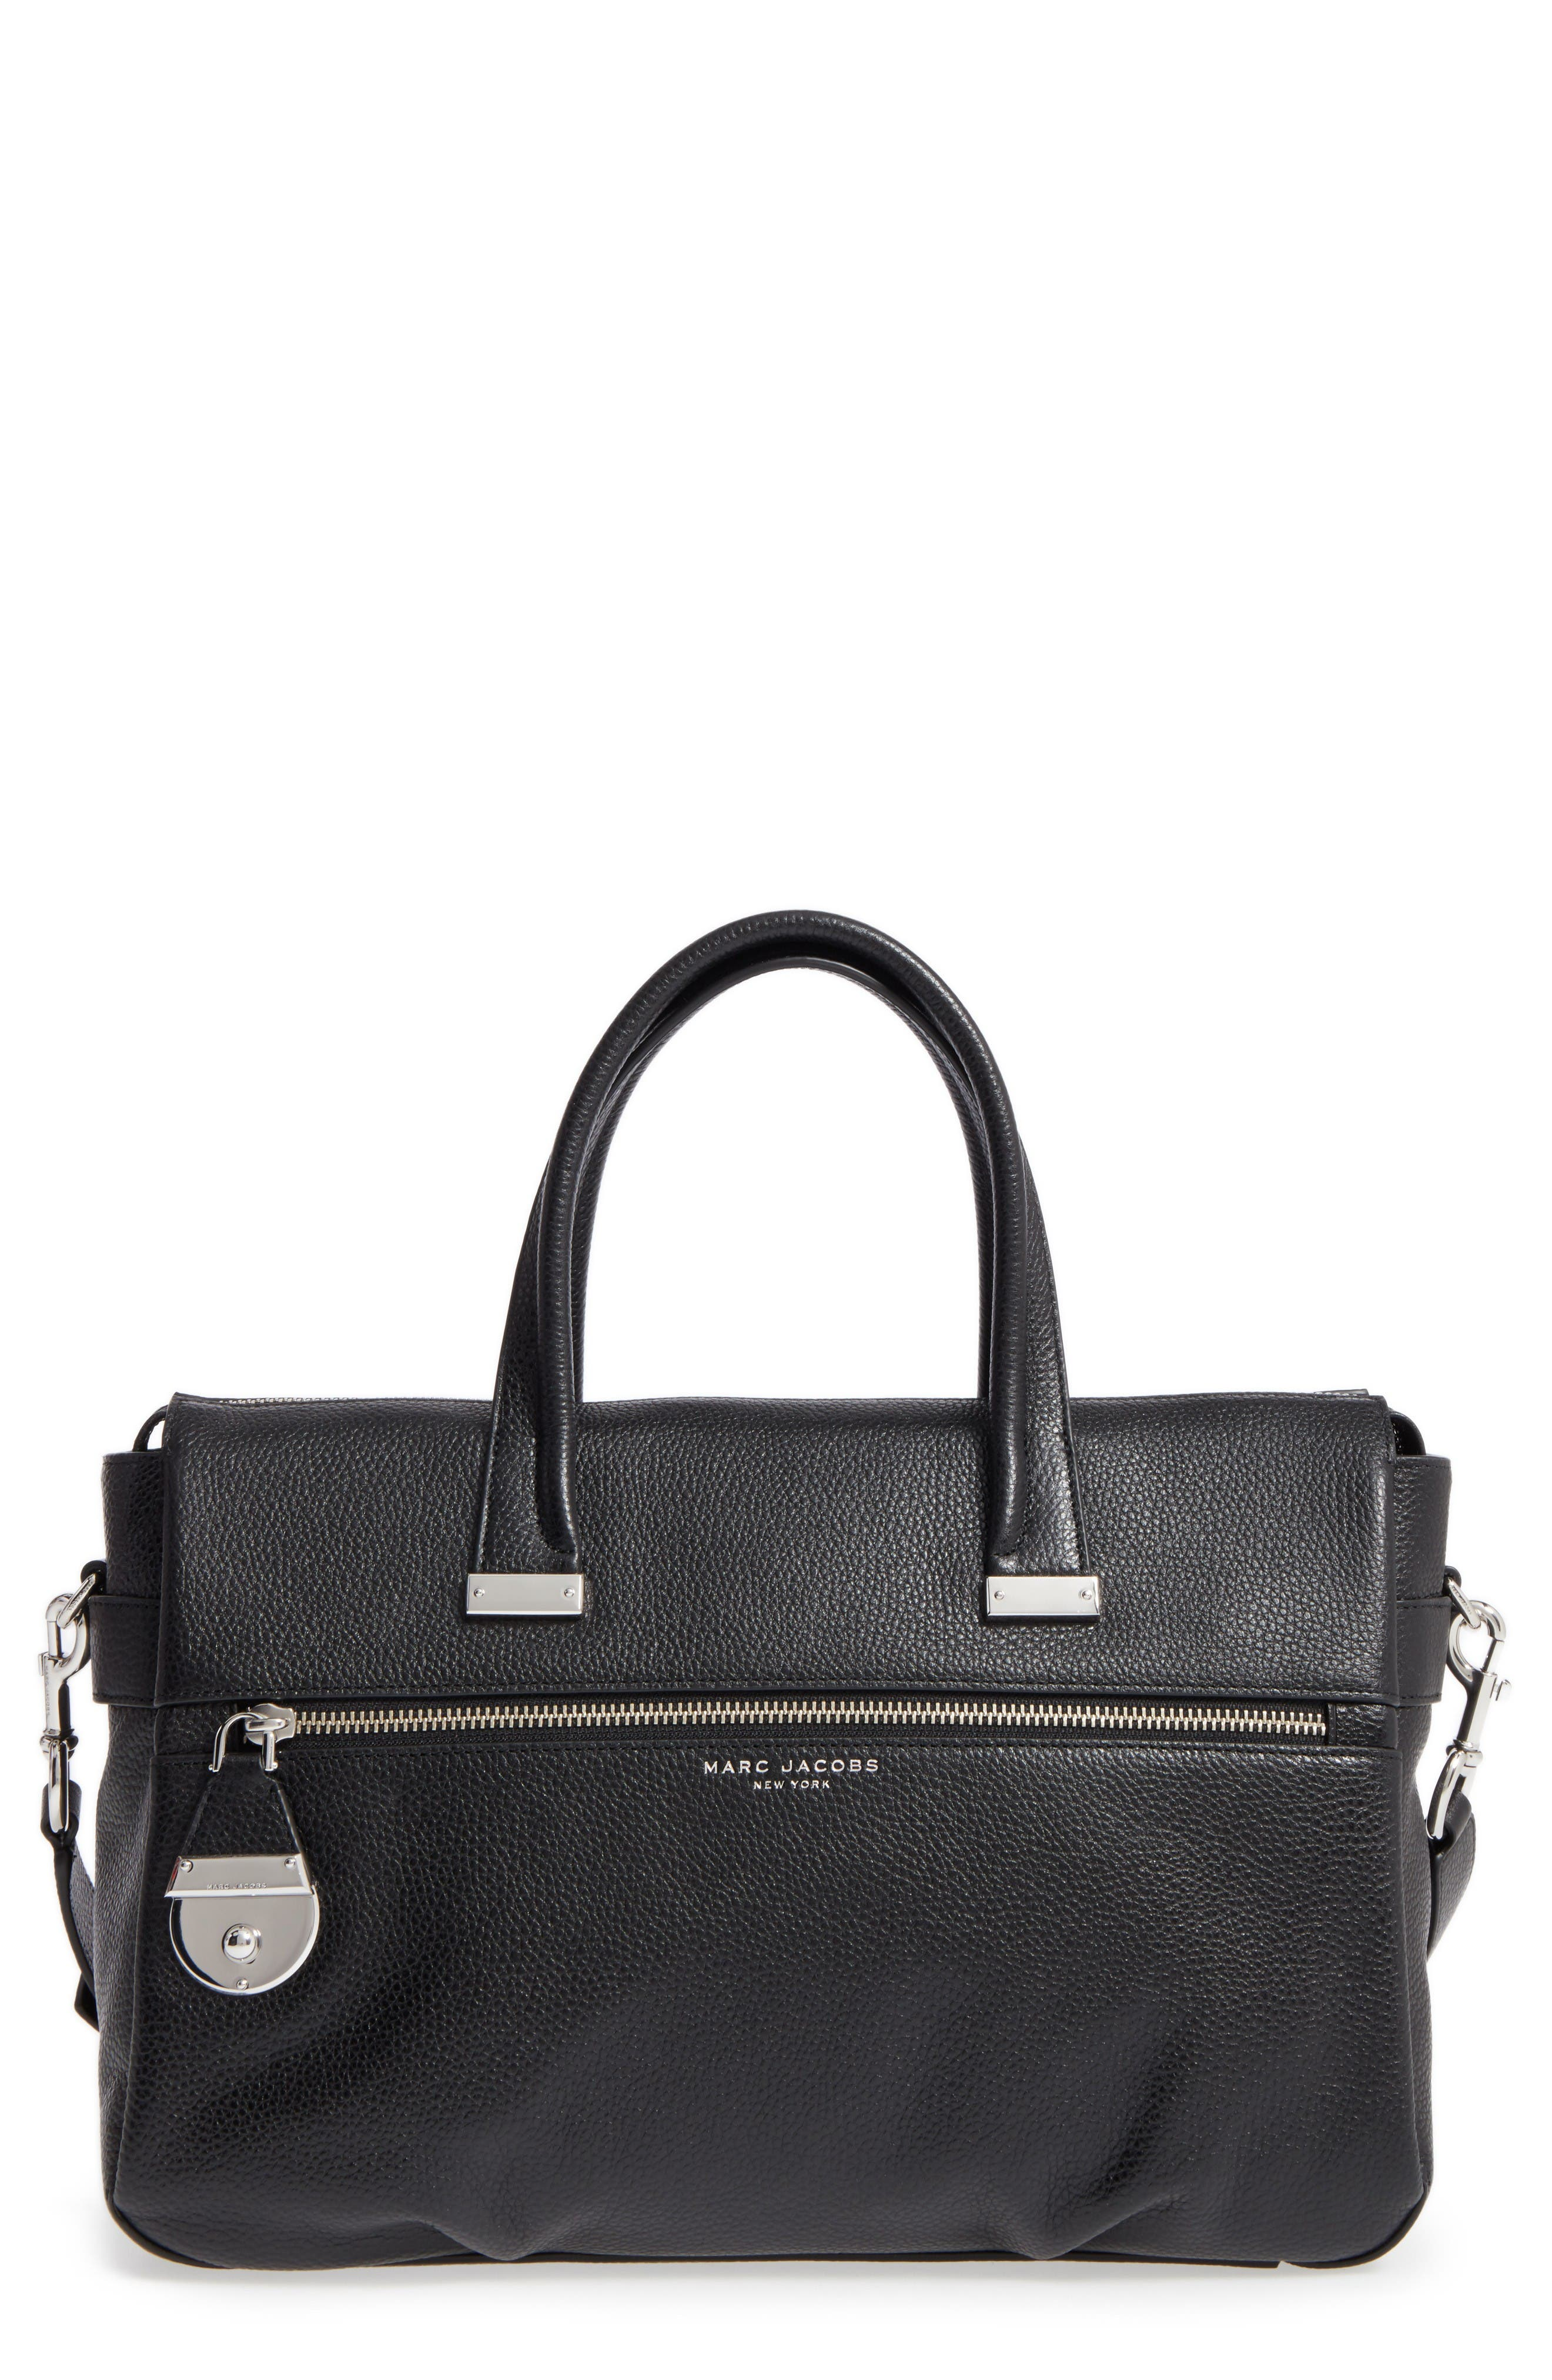 MARC JACOBS The Standard Medium East/West Leather Tote